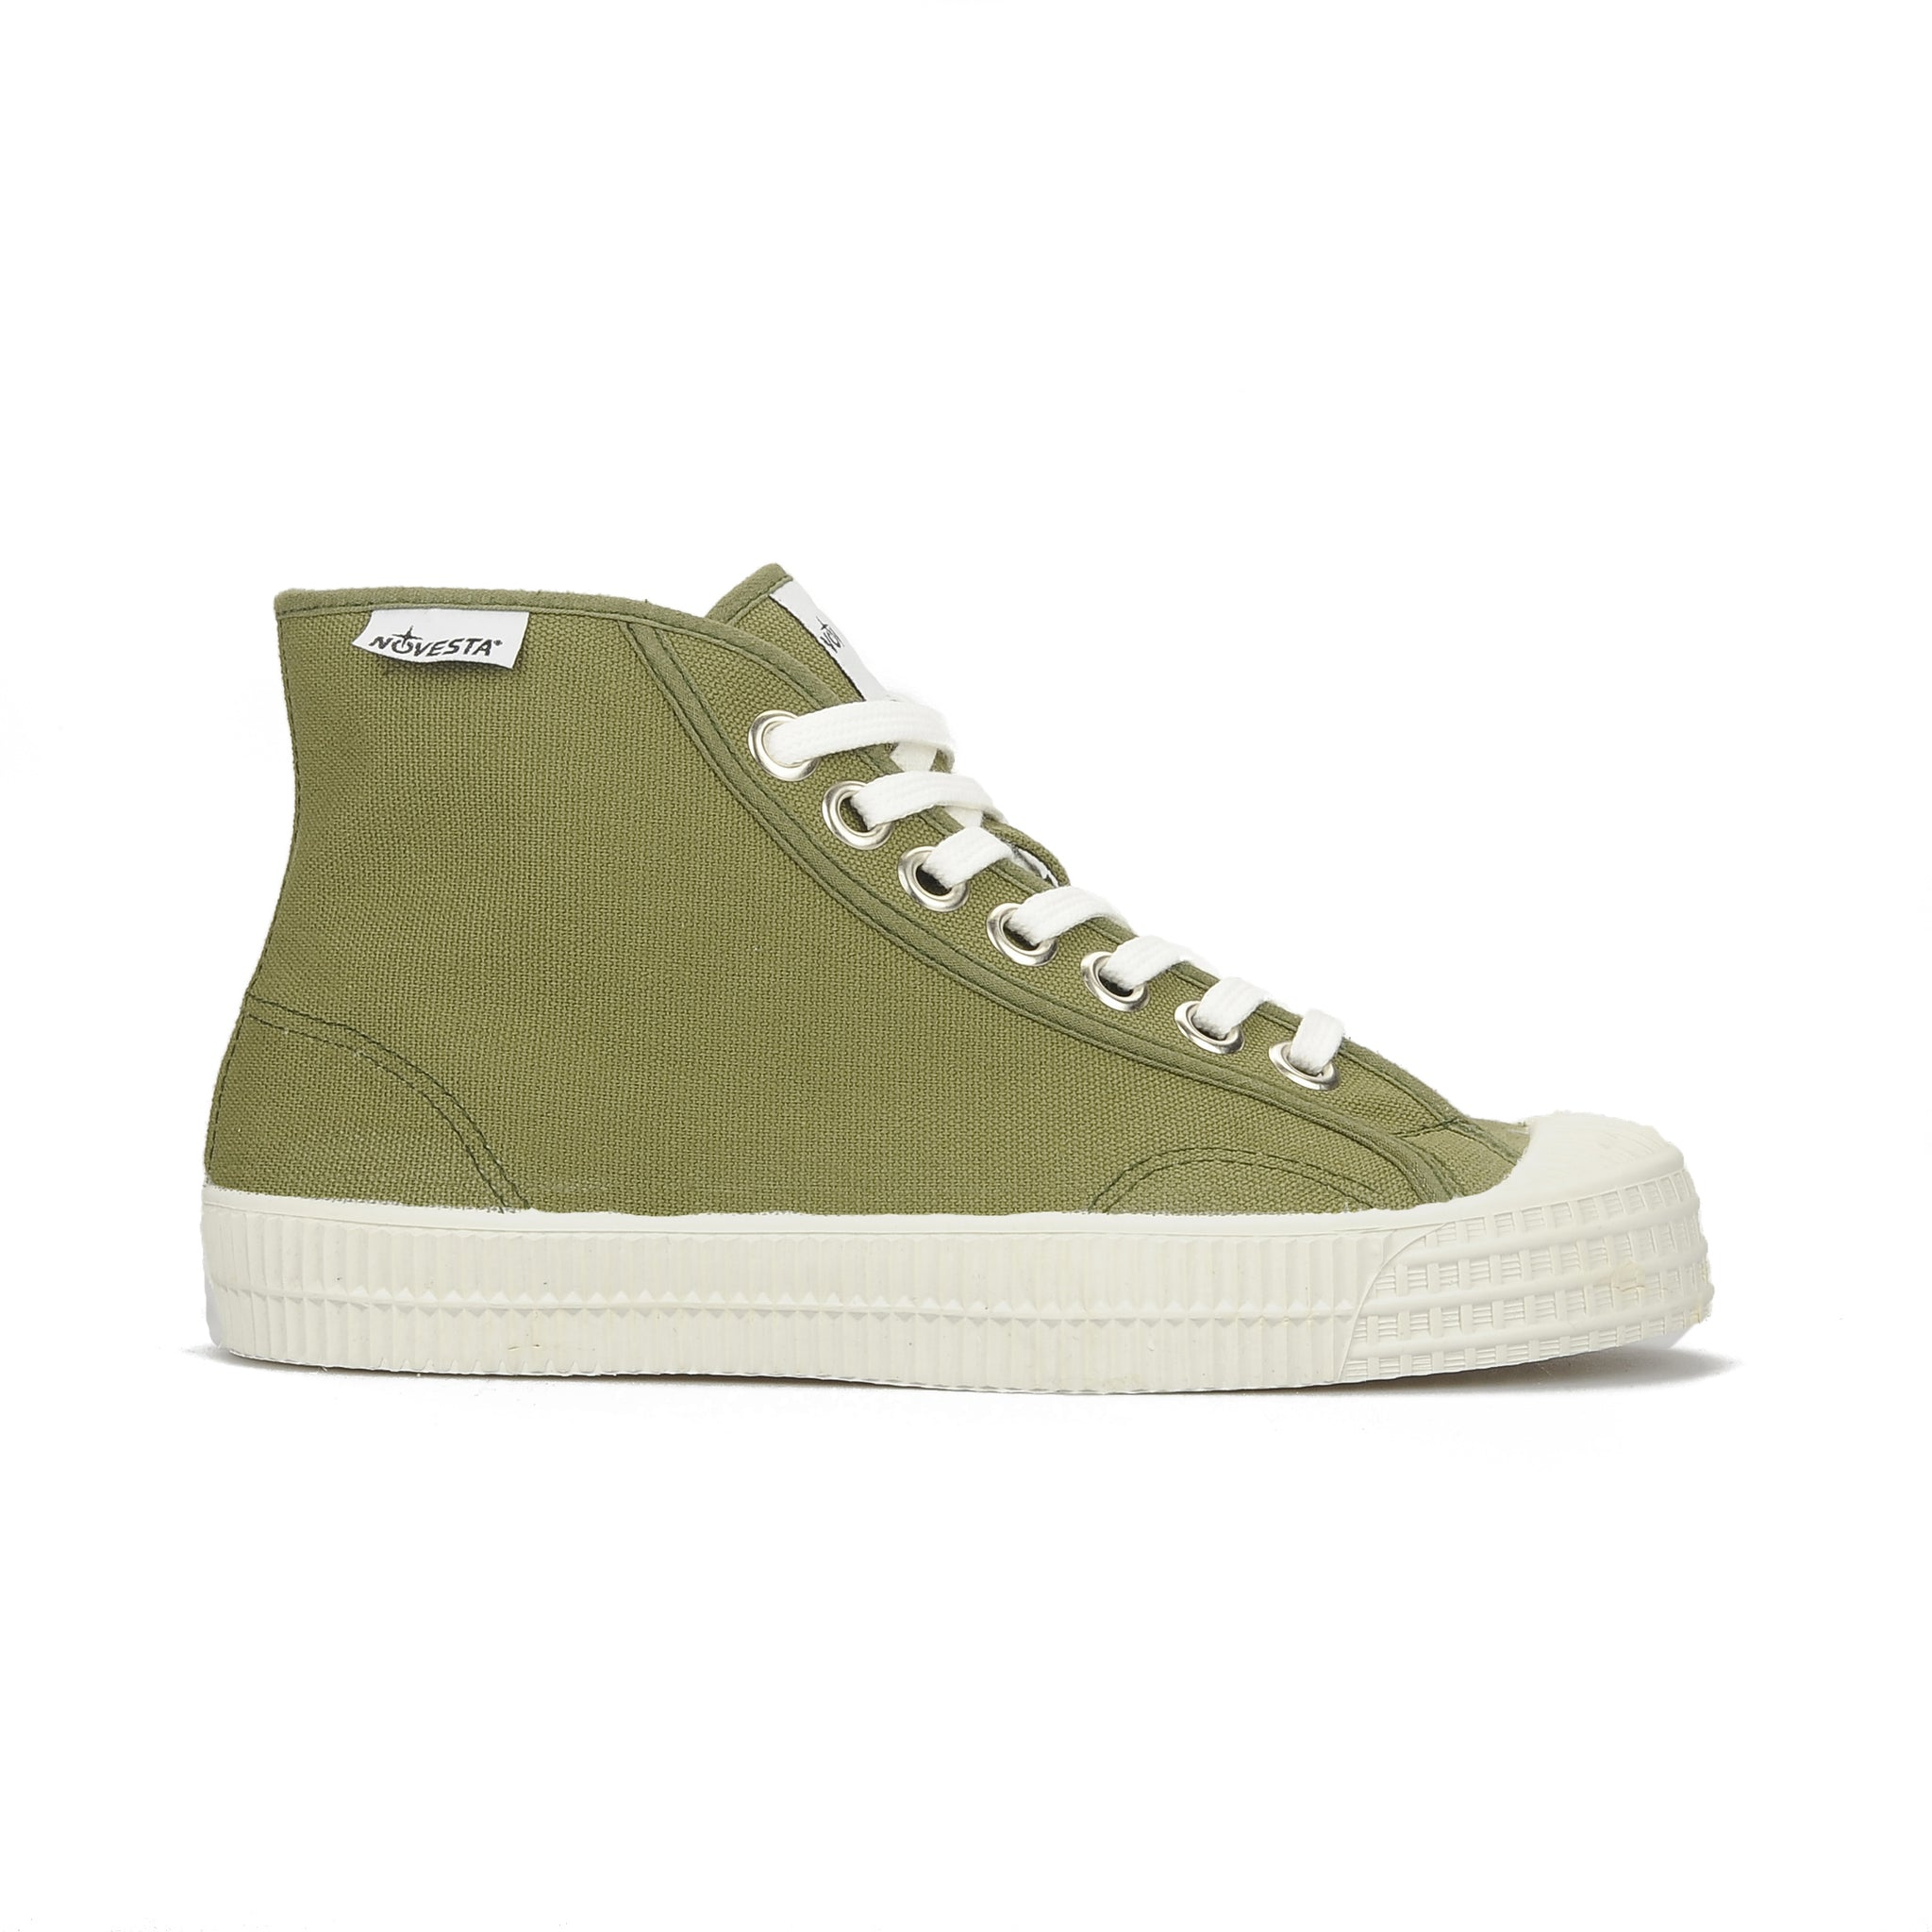 Novesta Rubber High Top Sneaker - military green colour - Partisan, Parkhurst, Johannesburg - side view